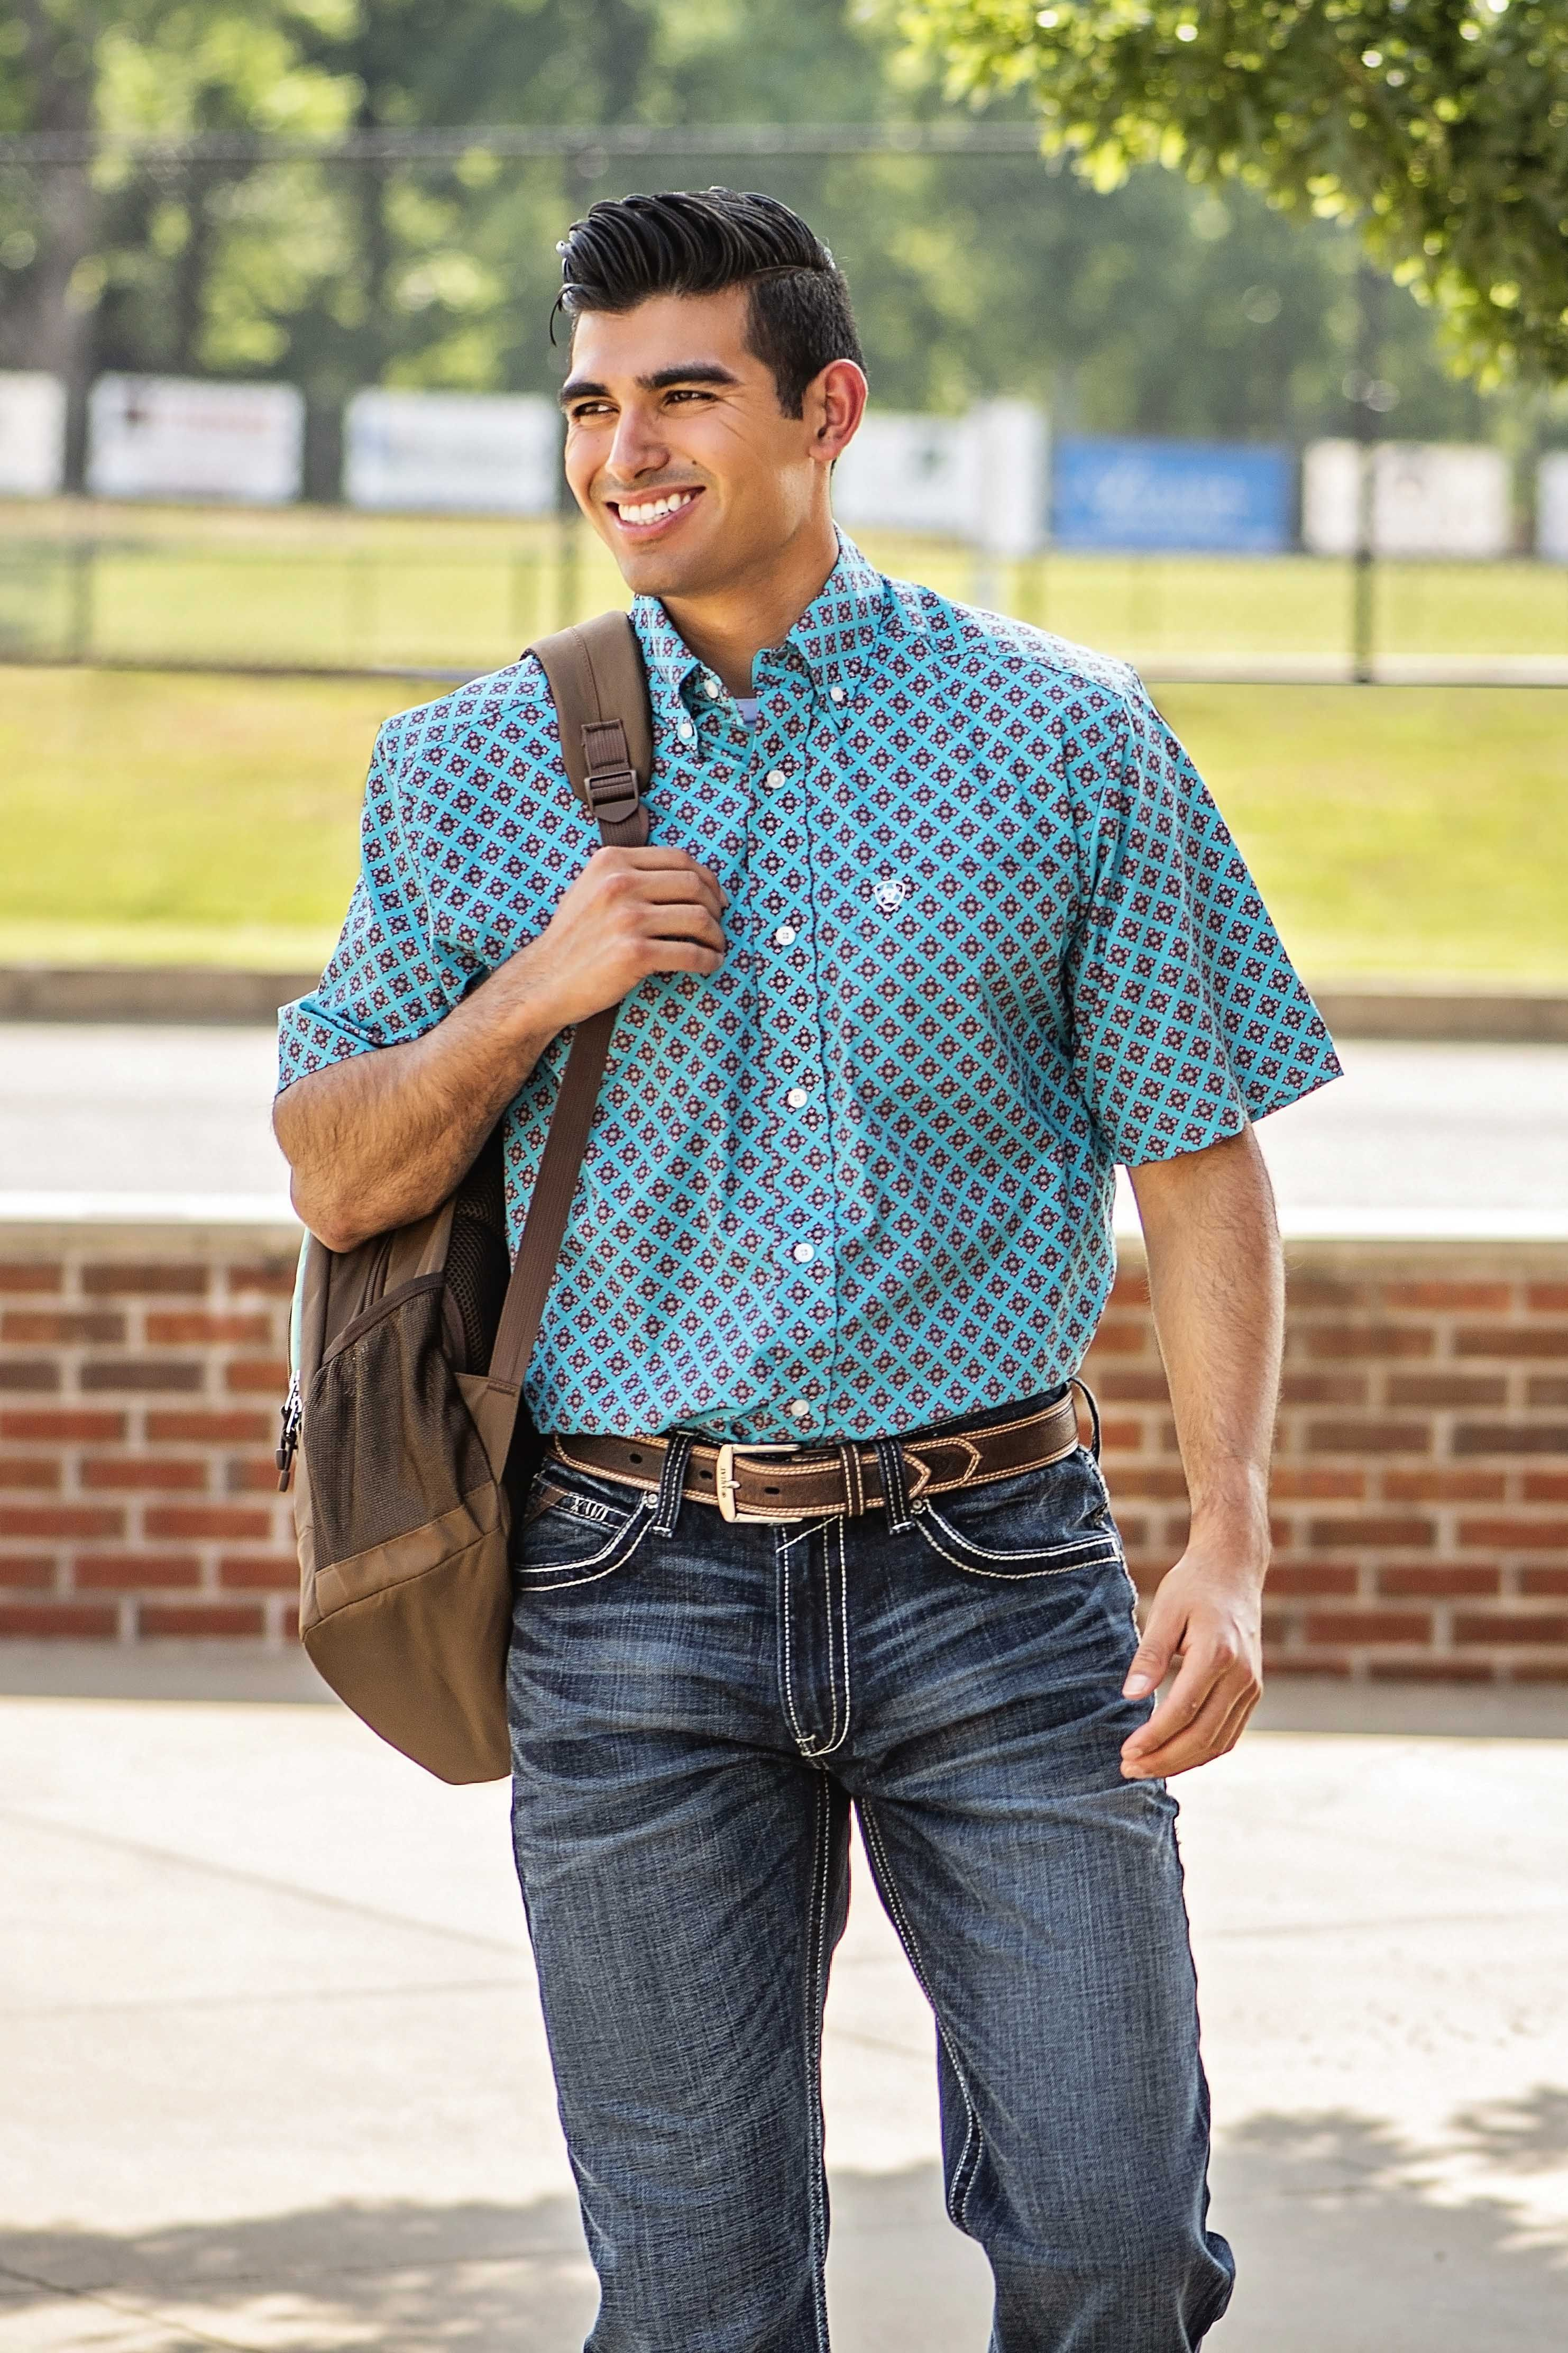 Make a statement on the first day. Mens outfits, Western